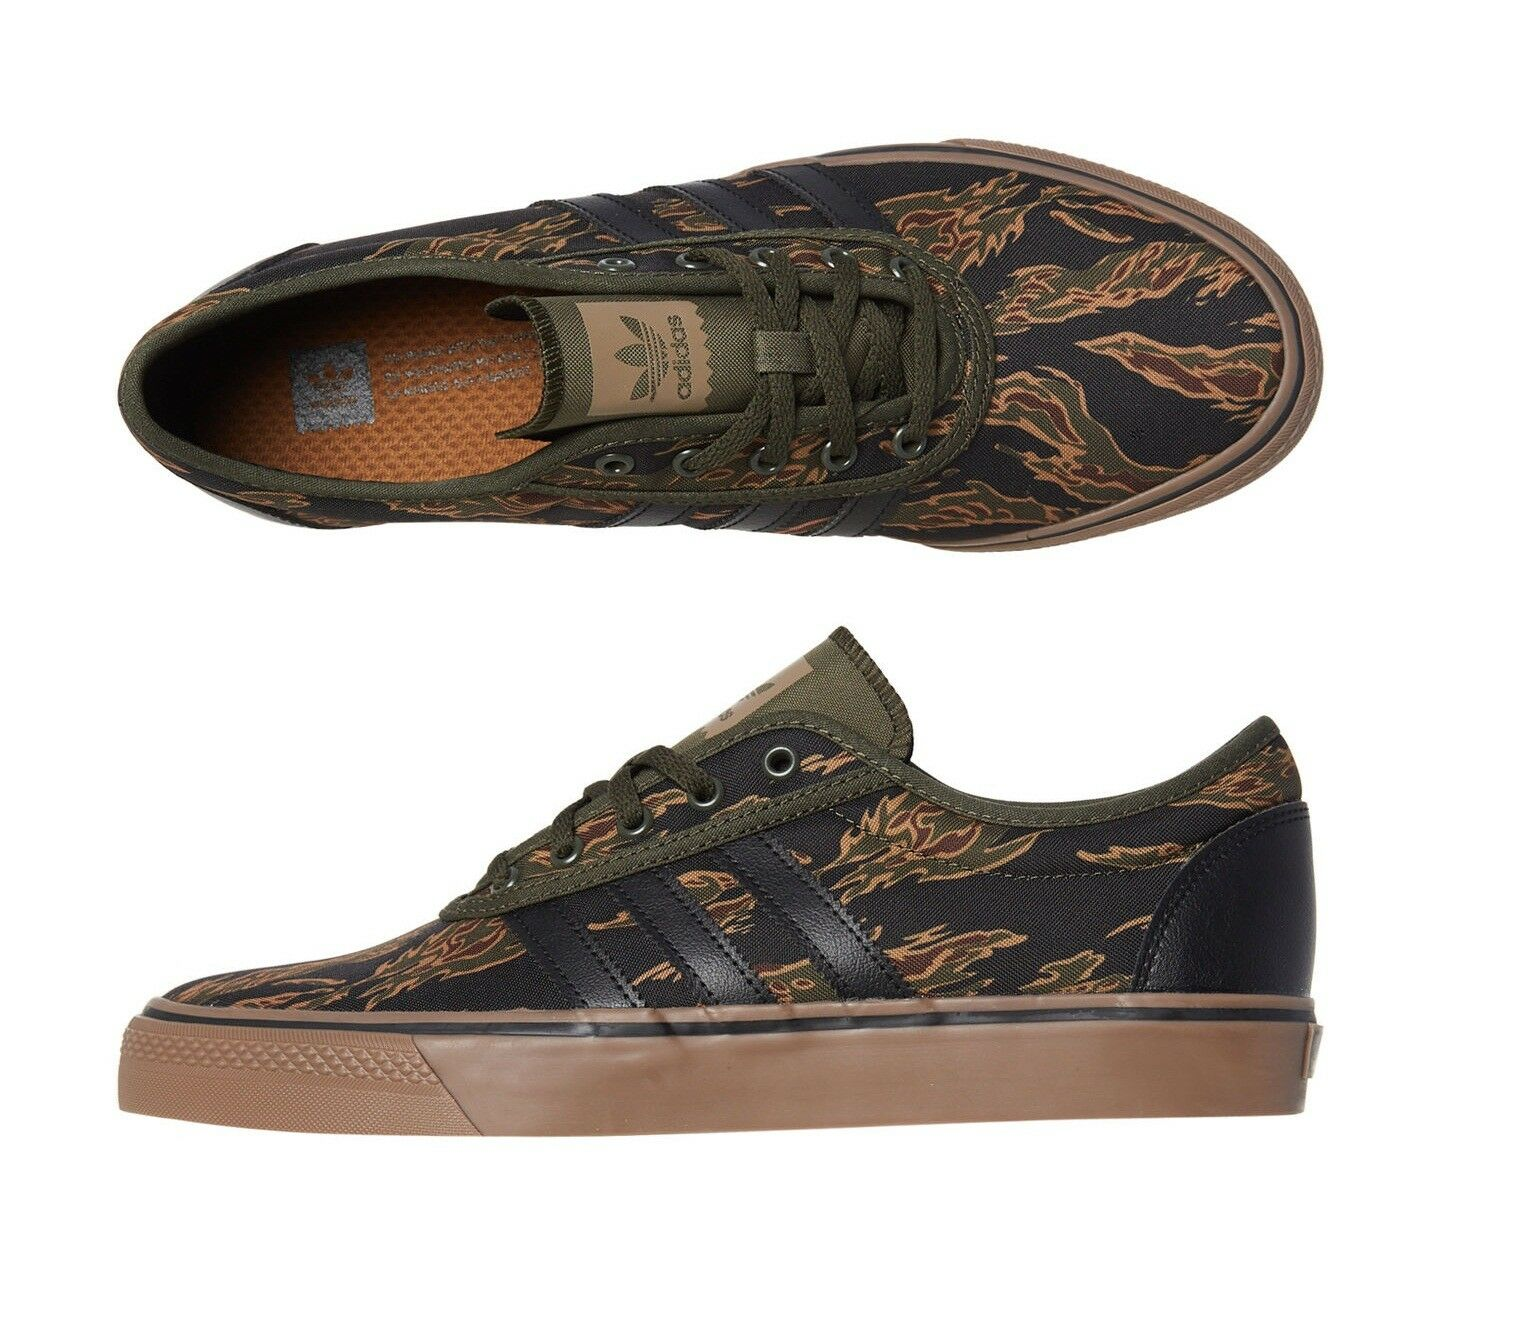 New Size 10.5 Adidas Men's Adi Ease shoes Canvas Green Camouflage Flames Low Top